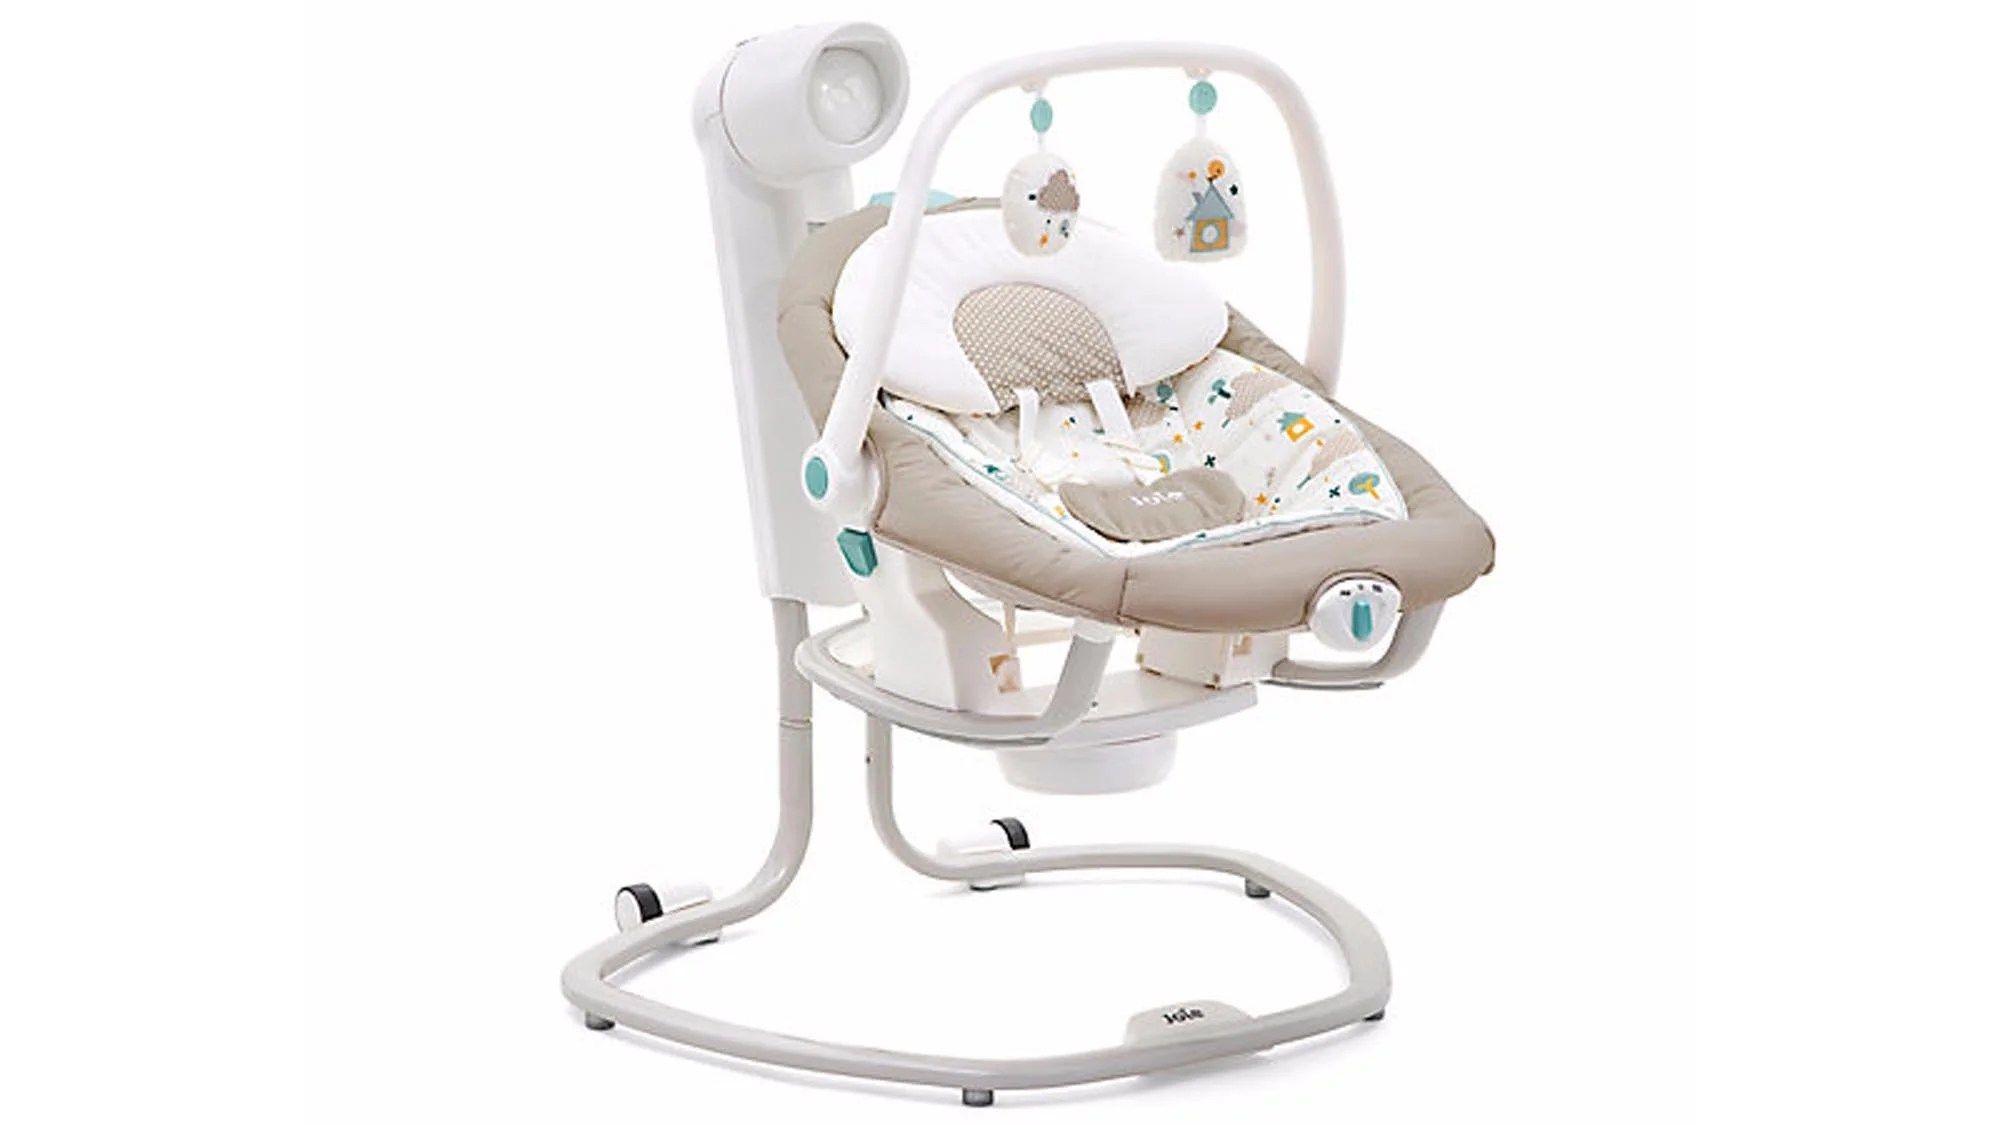 baby swing vibrating chair combo wheelchair wheel covers best bouncer the deals on bouncers rockers and 150 might seem like a lot to fork out for but if you can afford it this just be investment that sees through first few